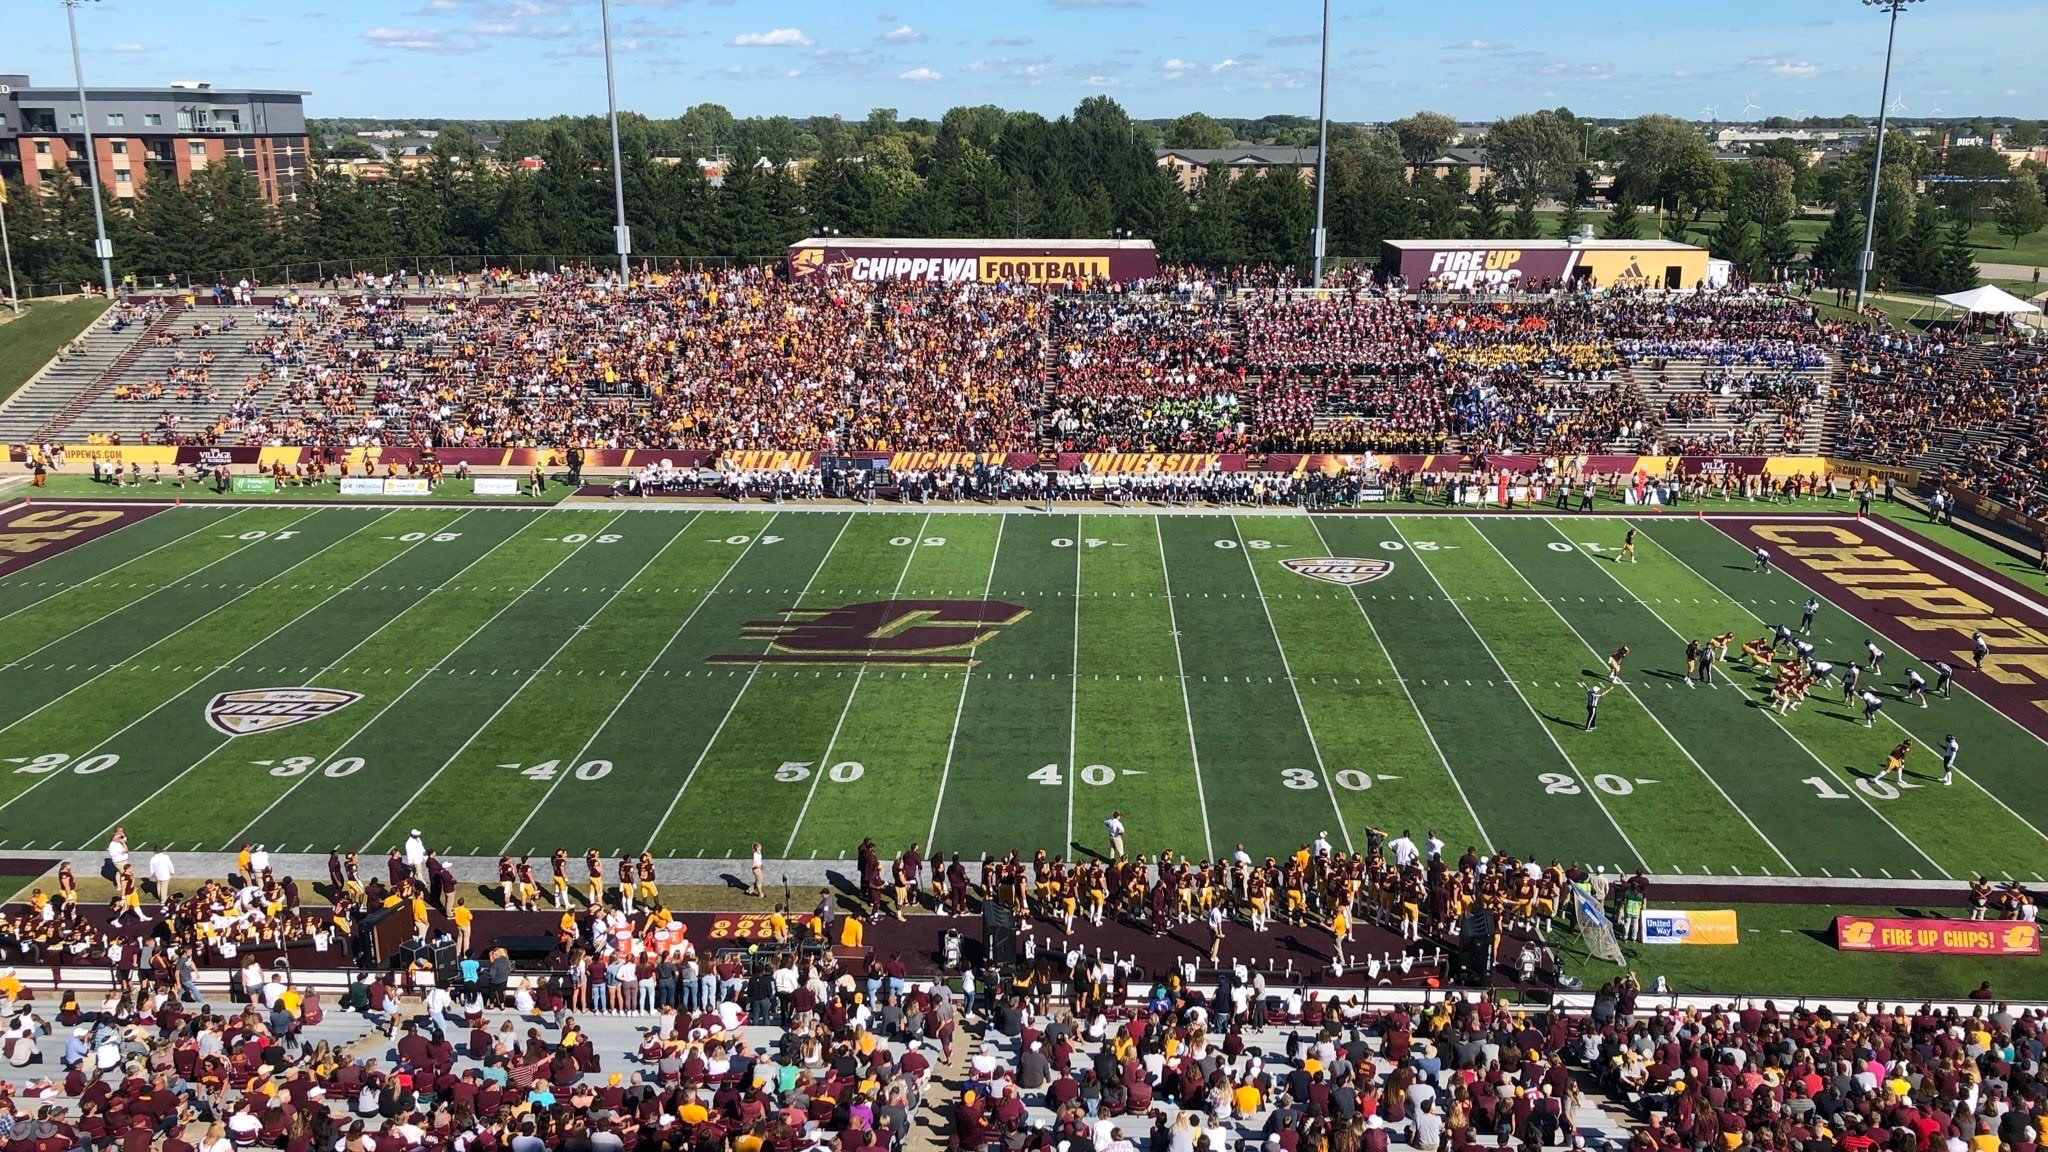 Kelly Shorts Stadium, home of the Central Michigan Chippewas